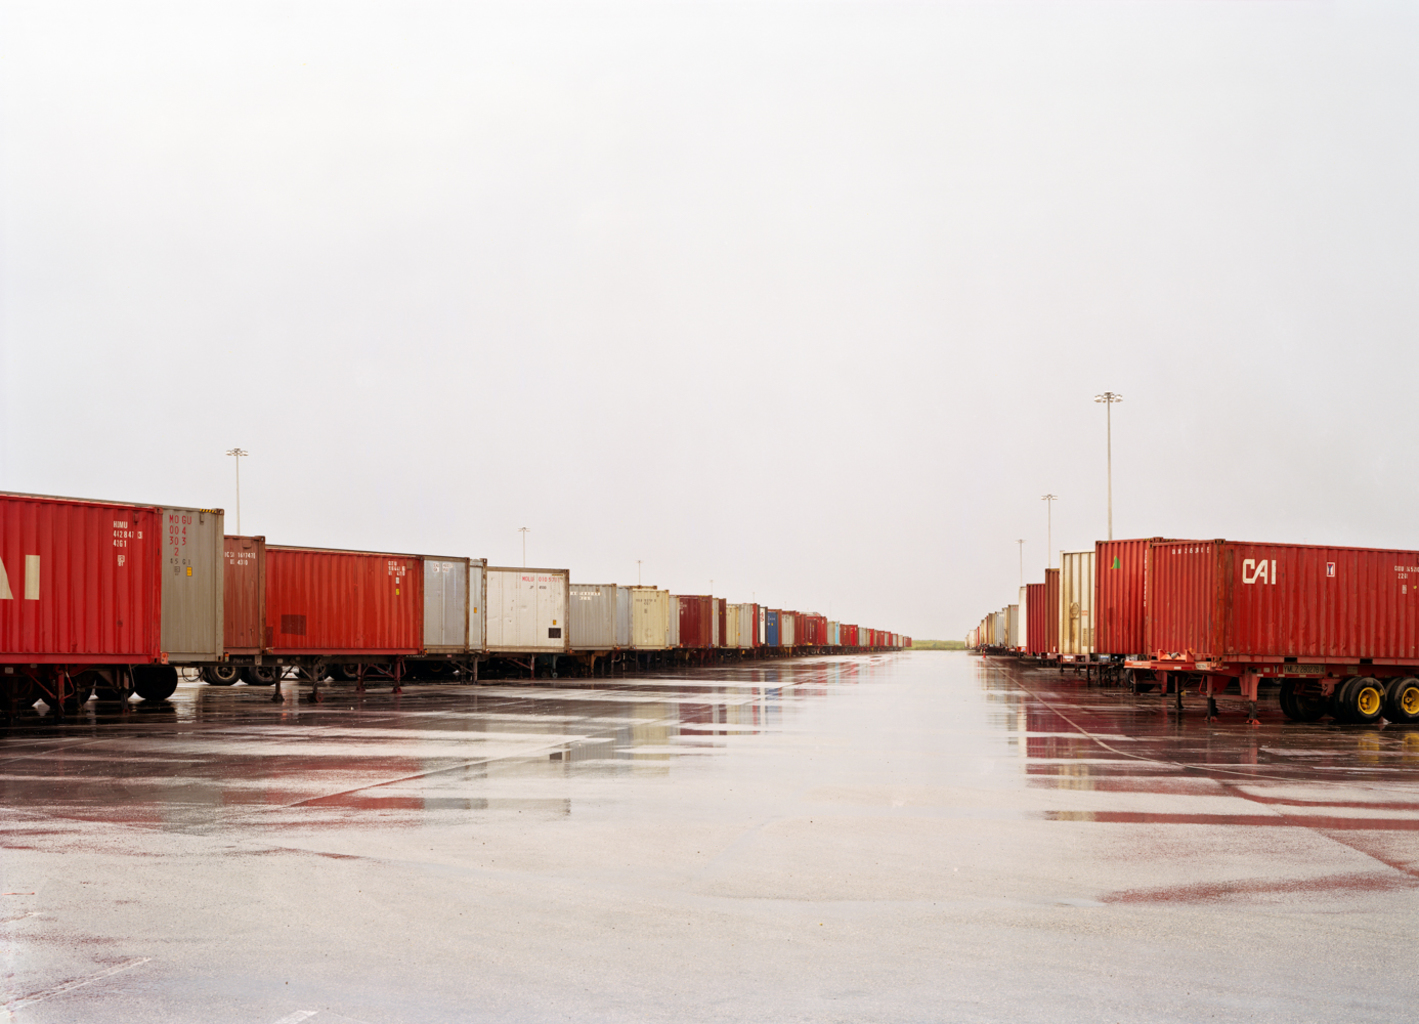 Untitled (Red Containers, Wet Ground), Fort Worth, Texas, 2000 </i) © Victoria Sambunaris